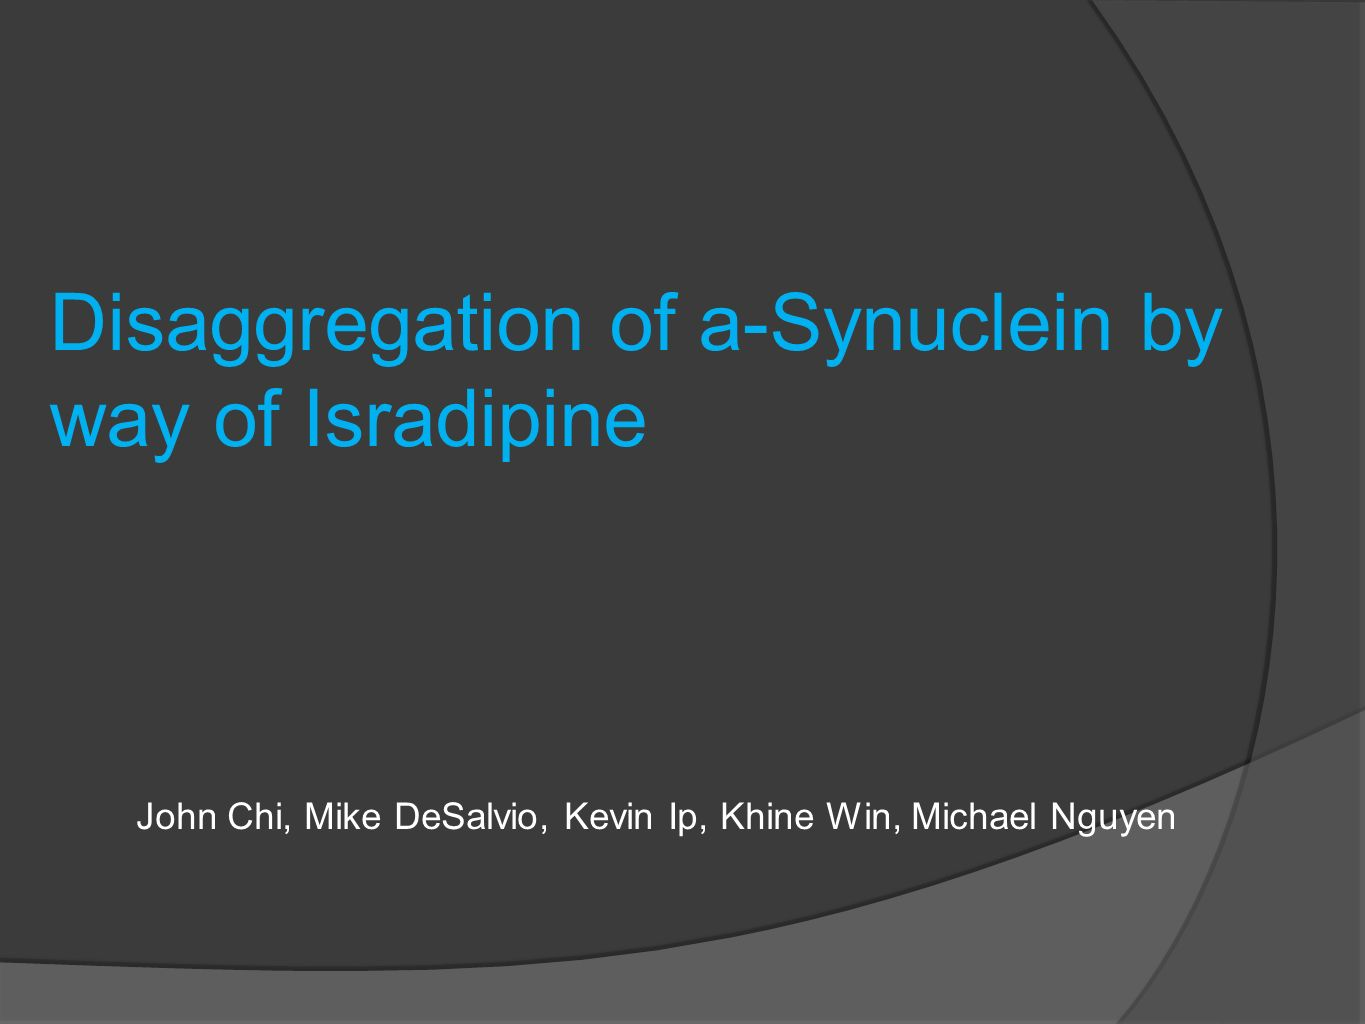 Disaggregation of a-Synuclein by way of Isradipine